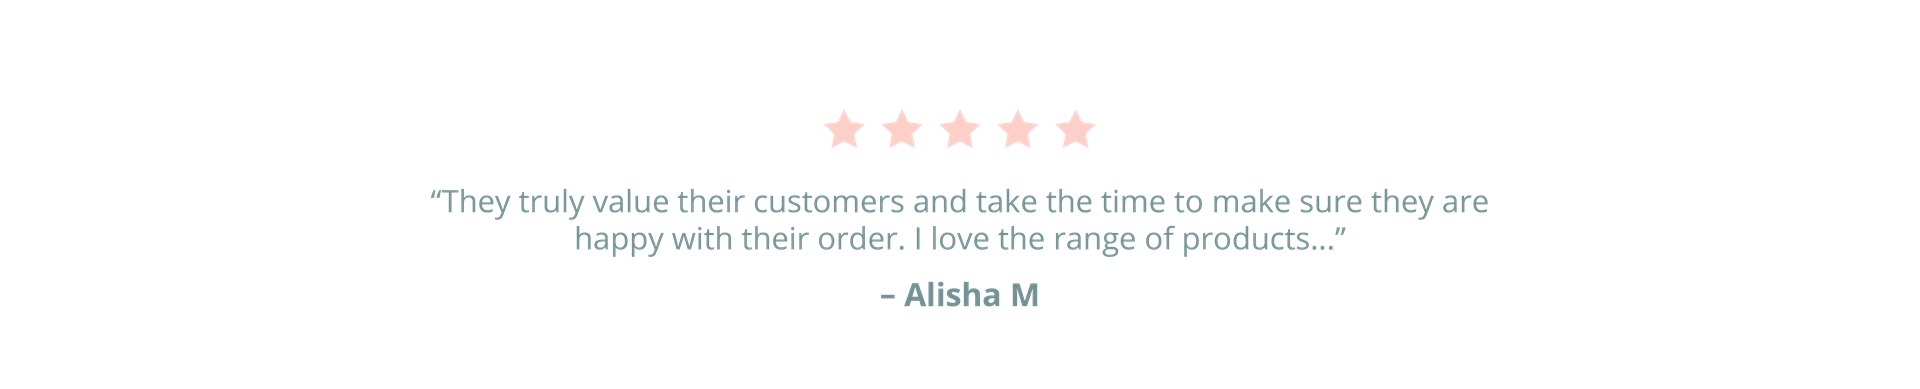 Customer Review by Alisha M